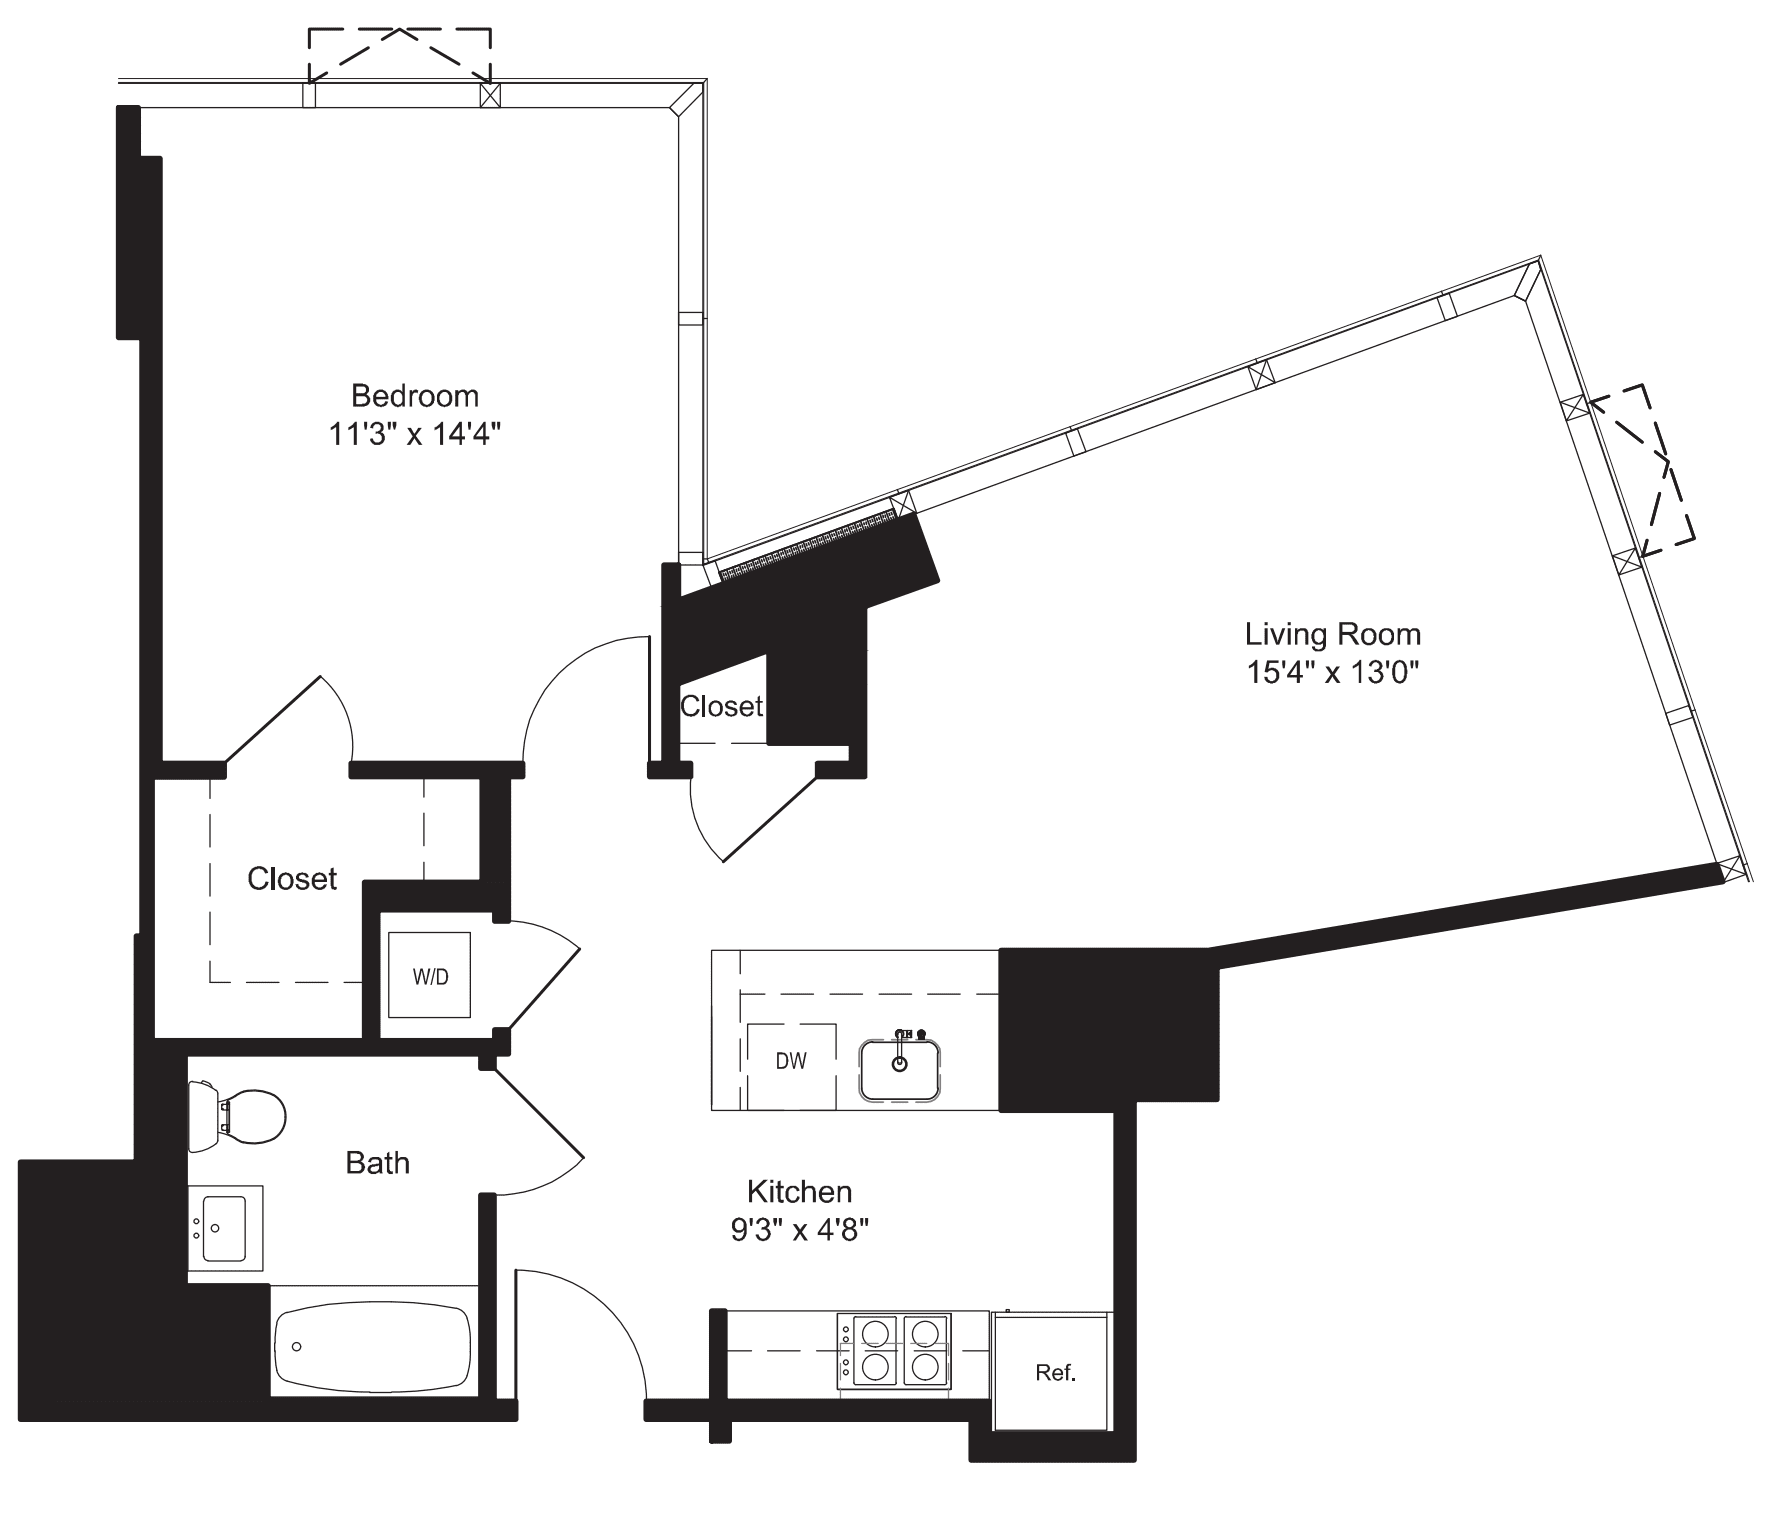 One Bedroom- H 7-10, 17-19